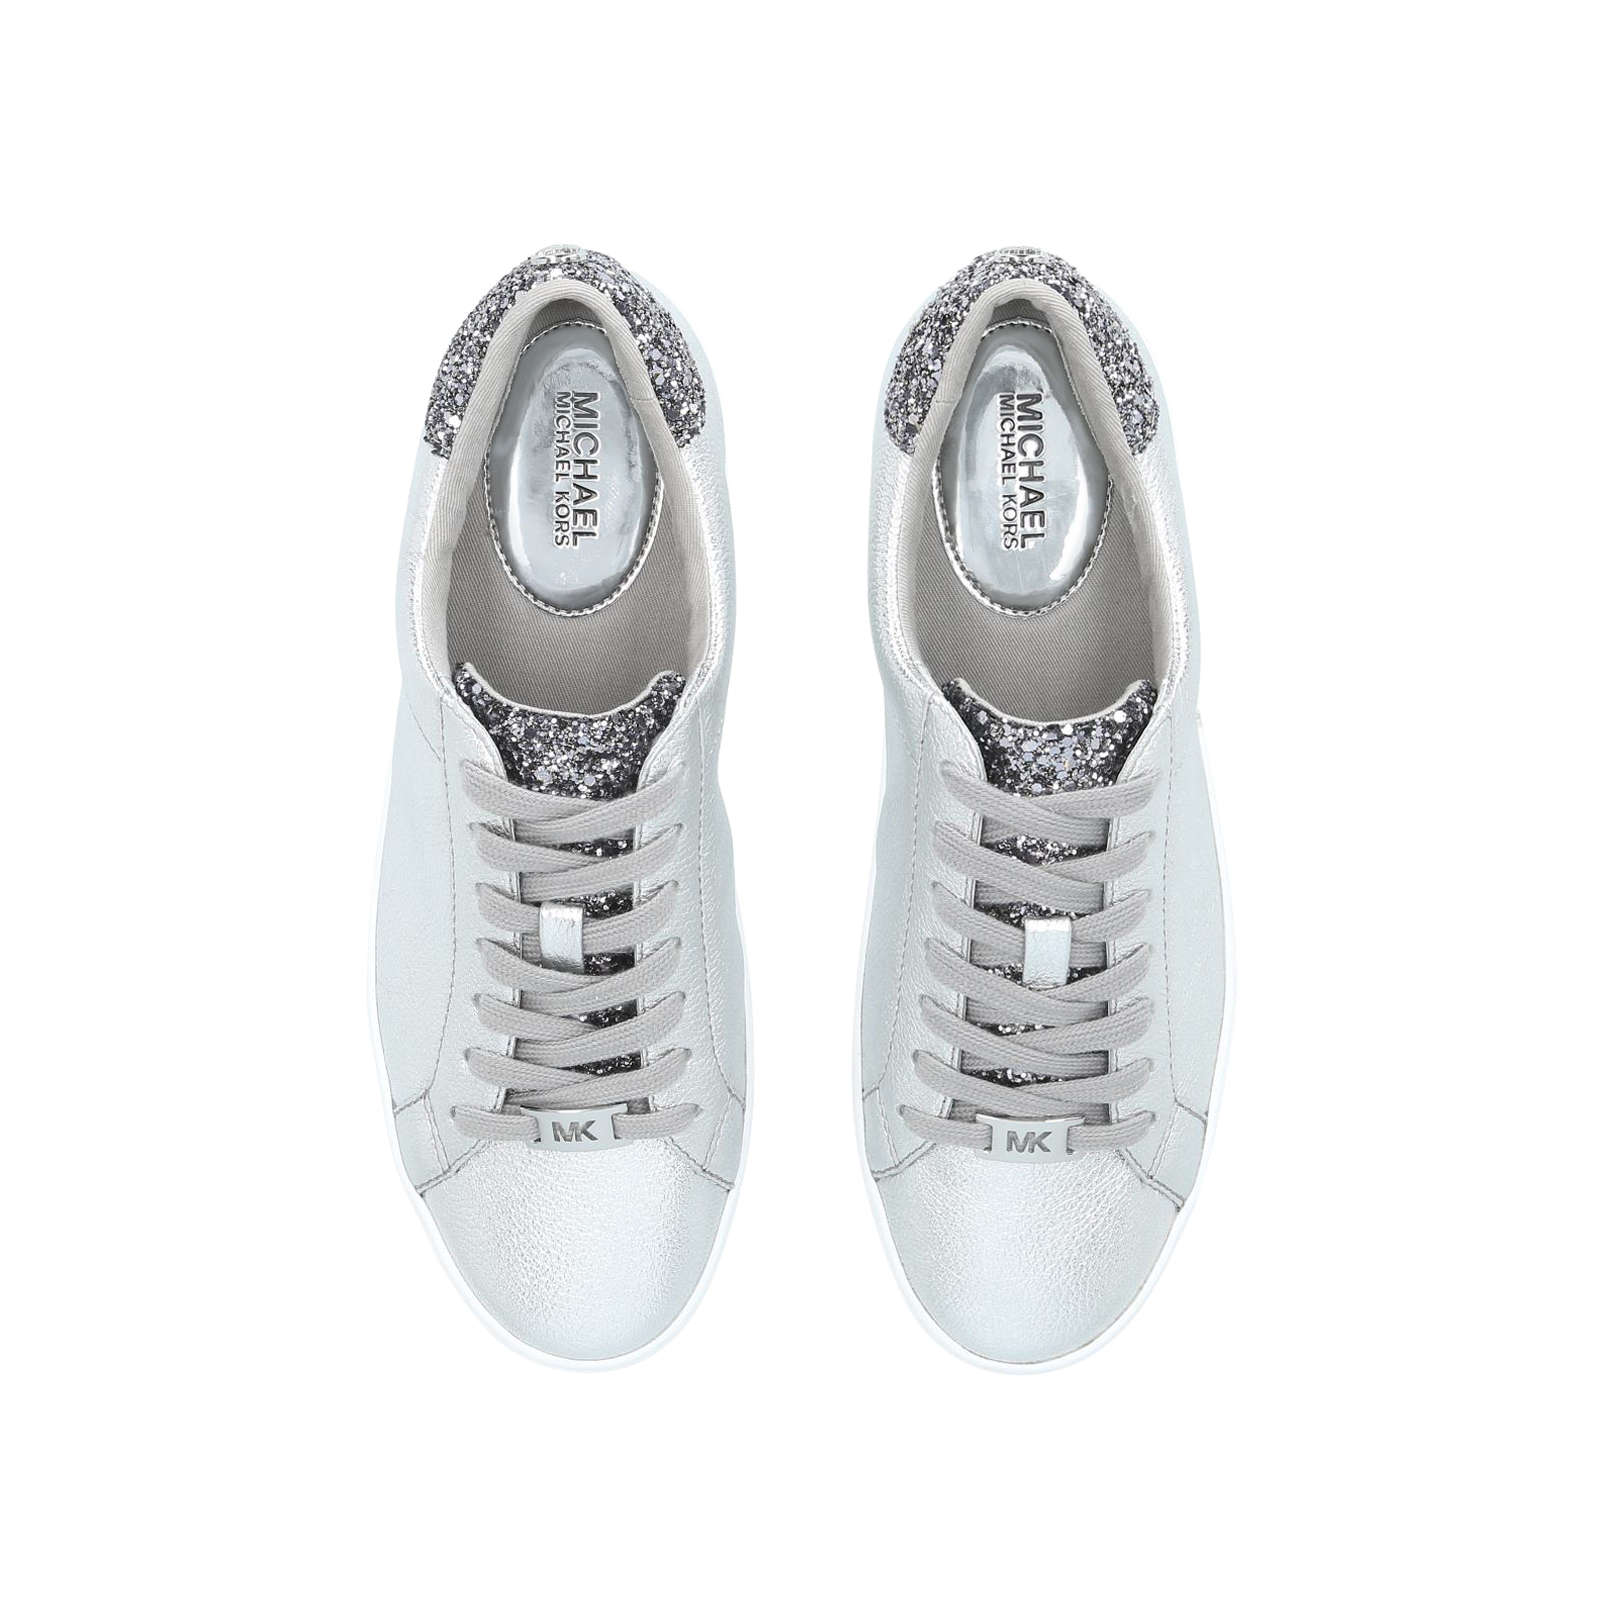 35bf40e1b78 IRVING LACE UP Michael Michael Kors Irving Lace Up Silver Glitter ...